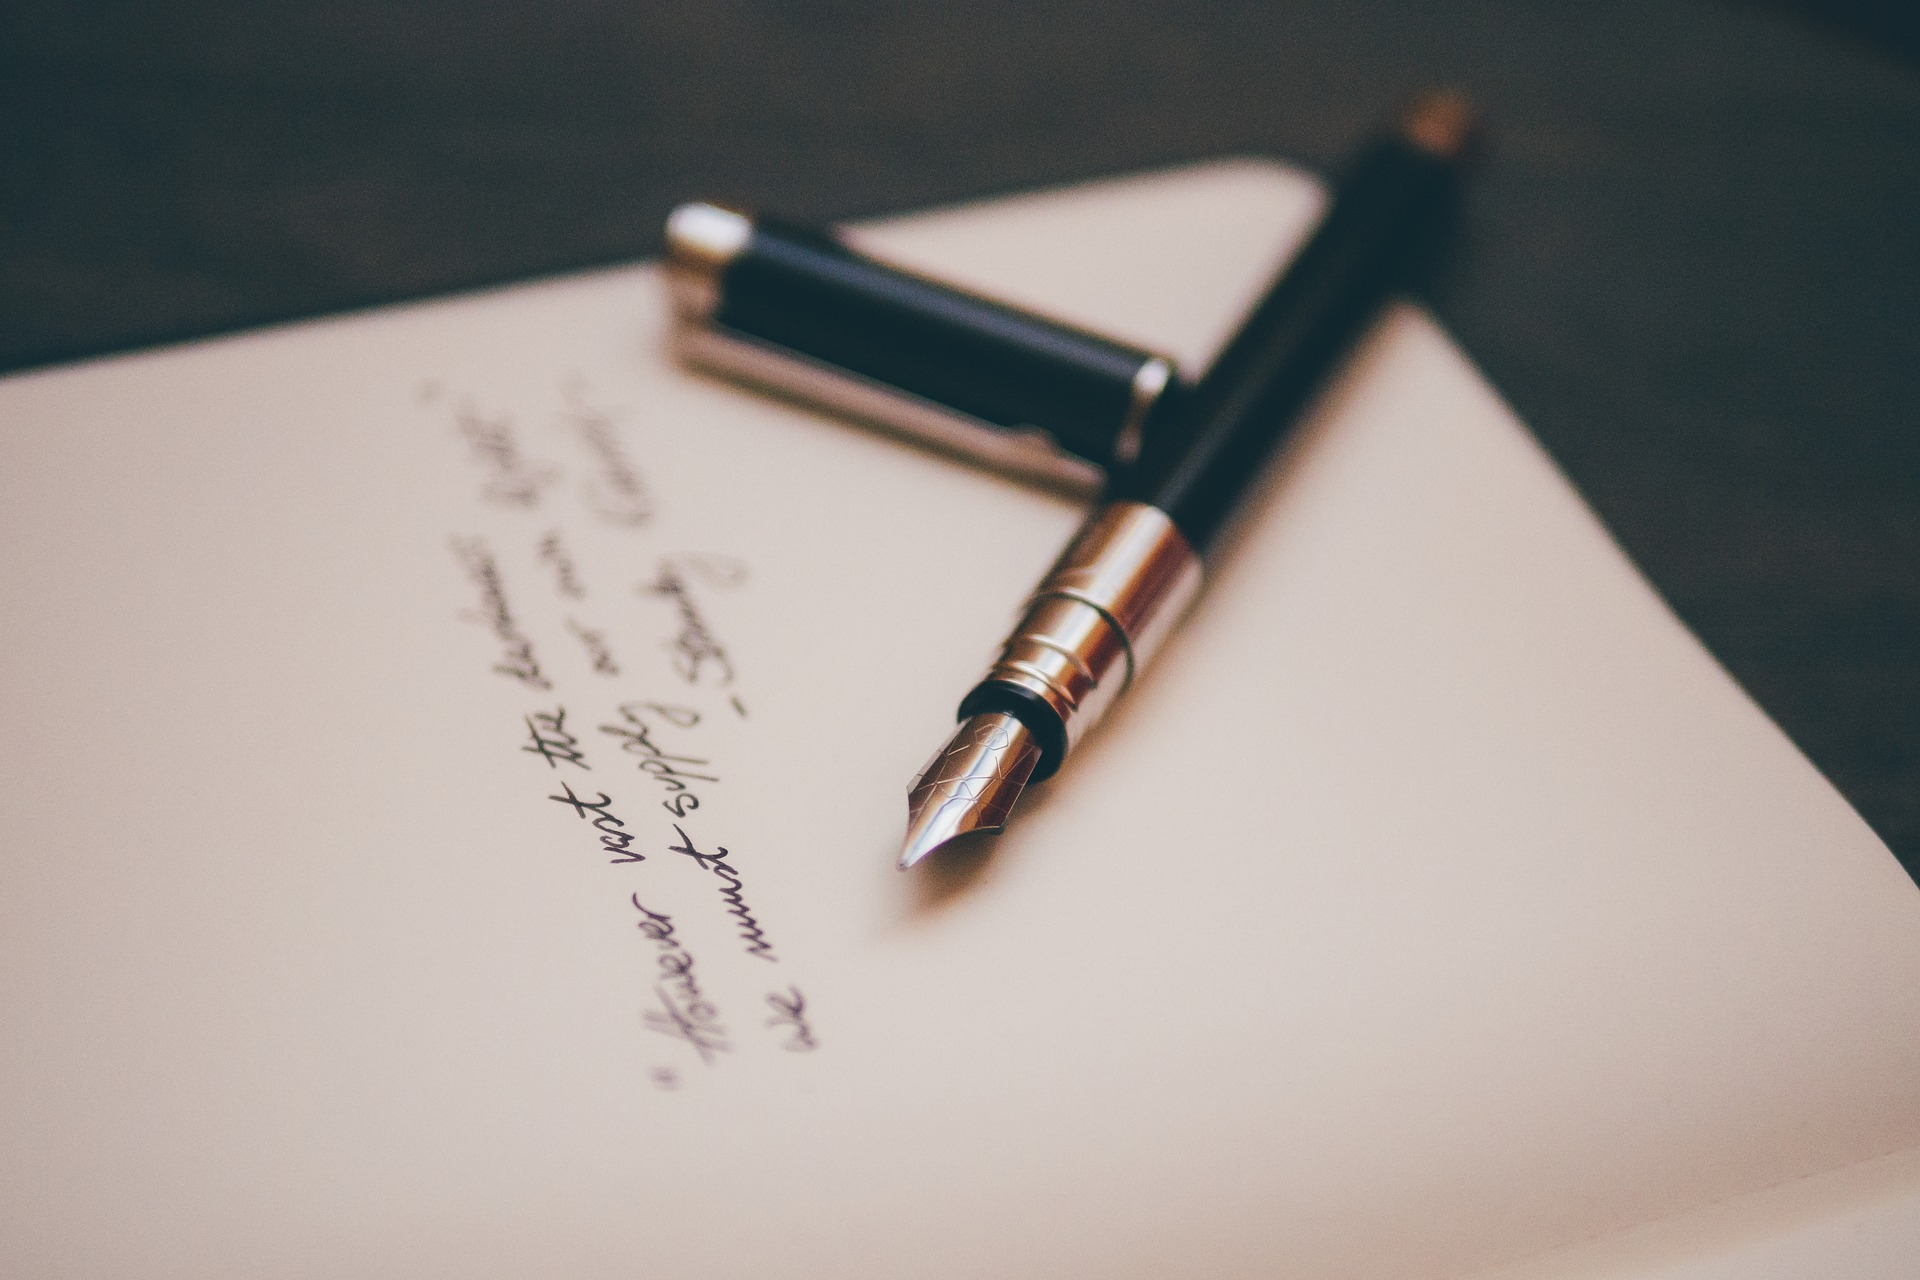 The continued need for writing